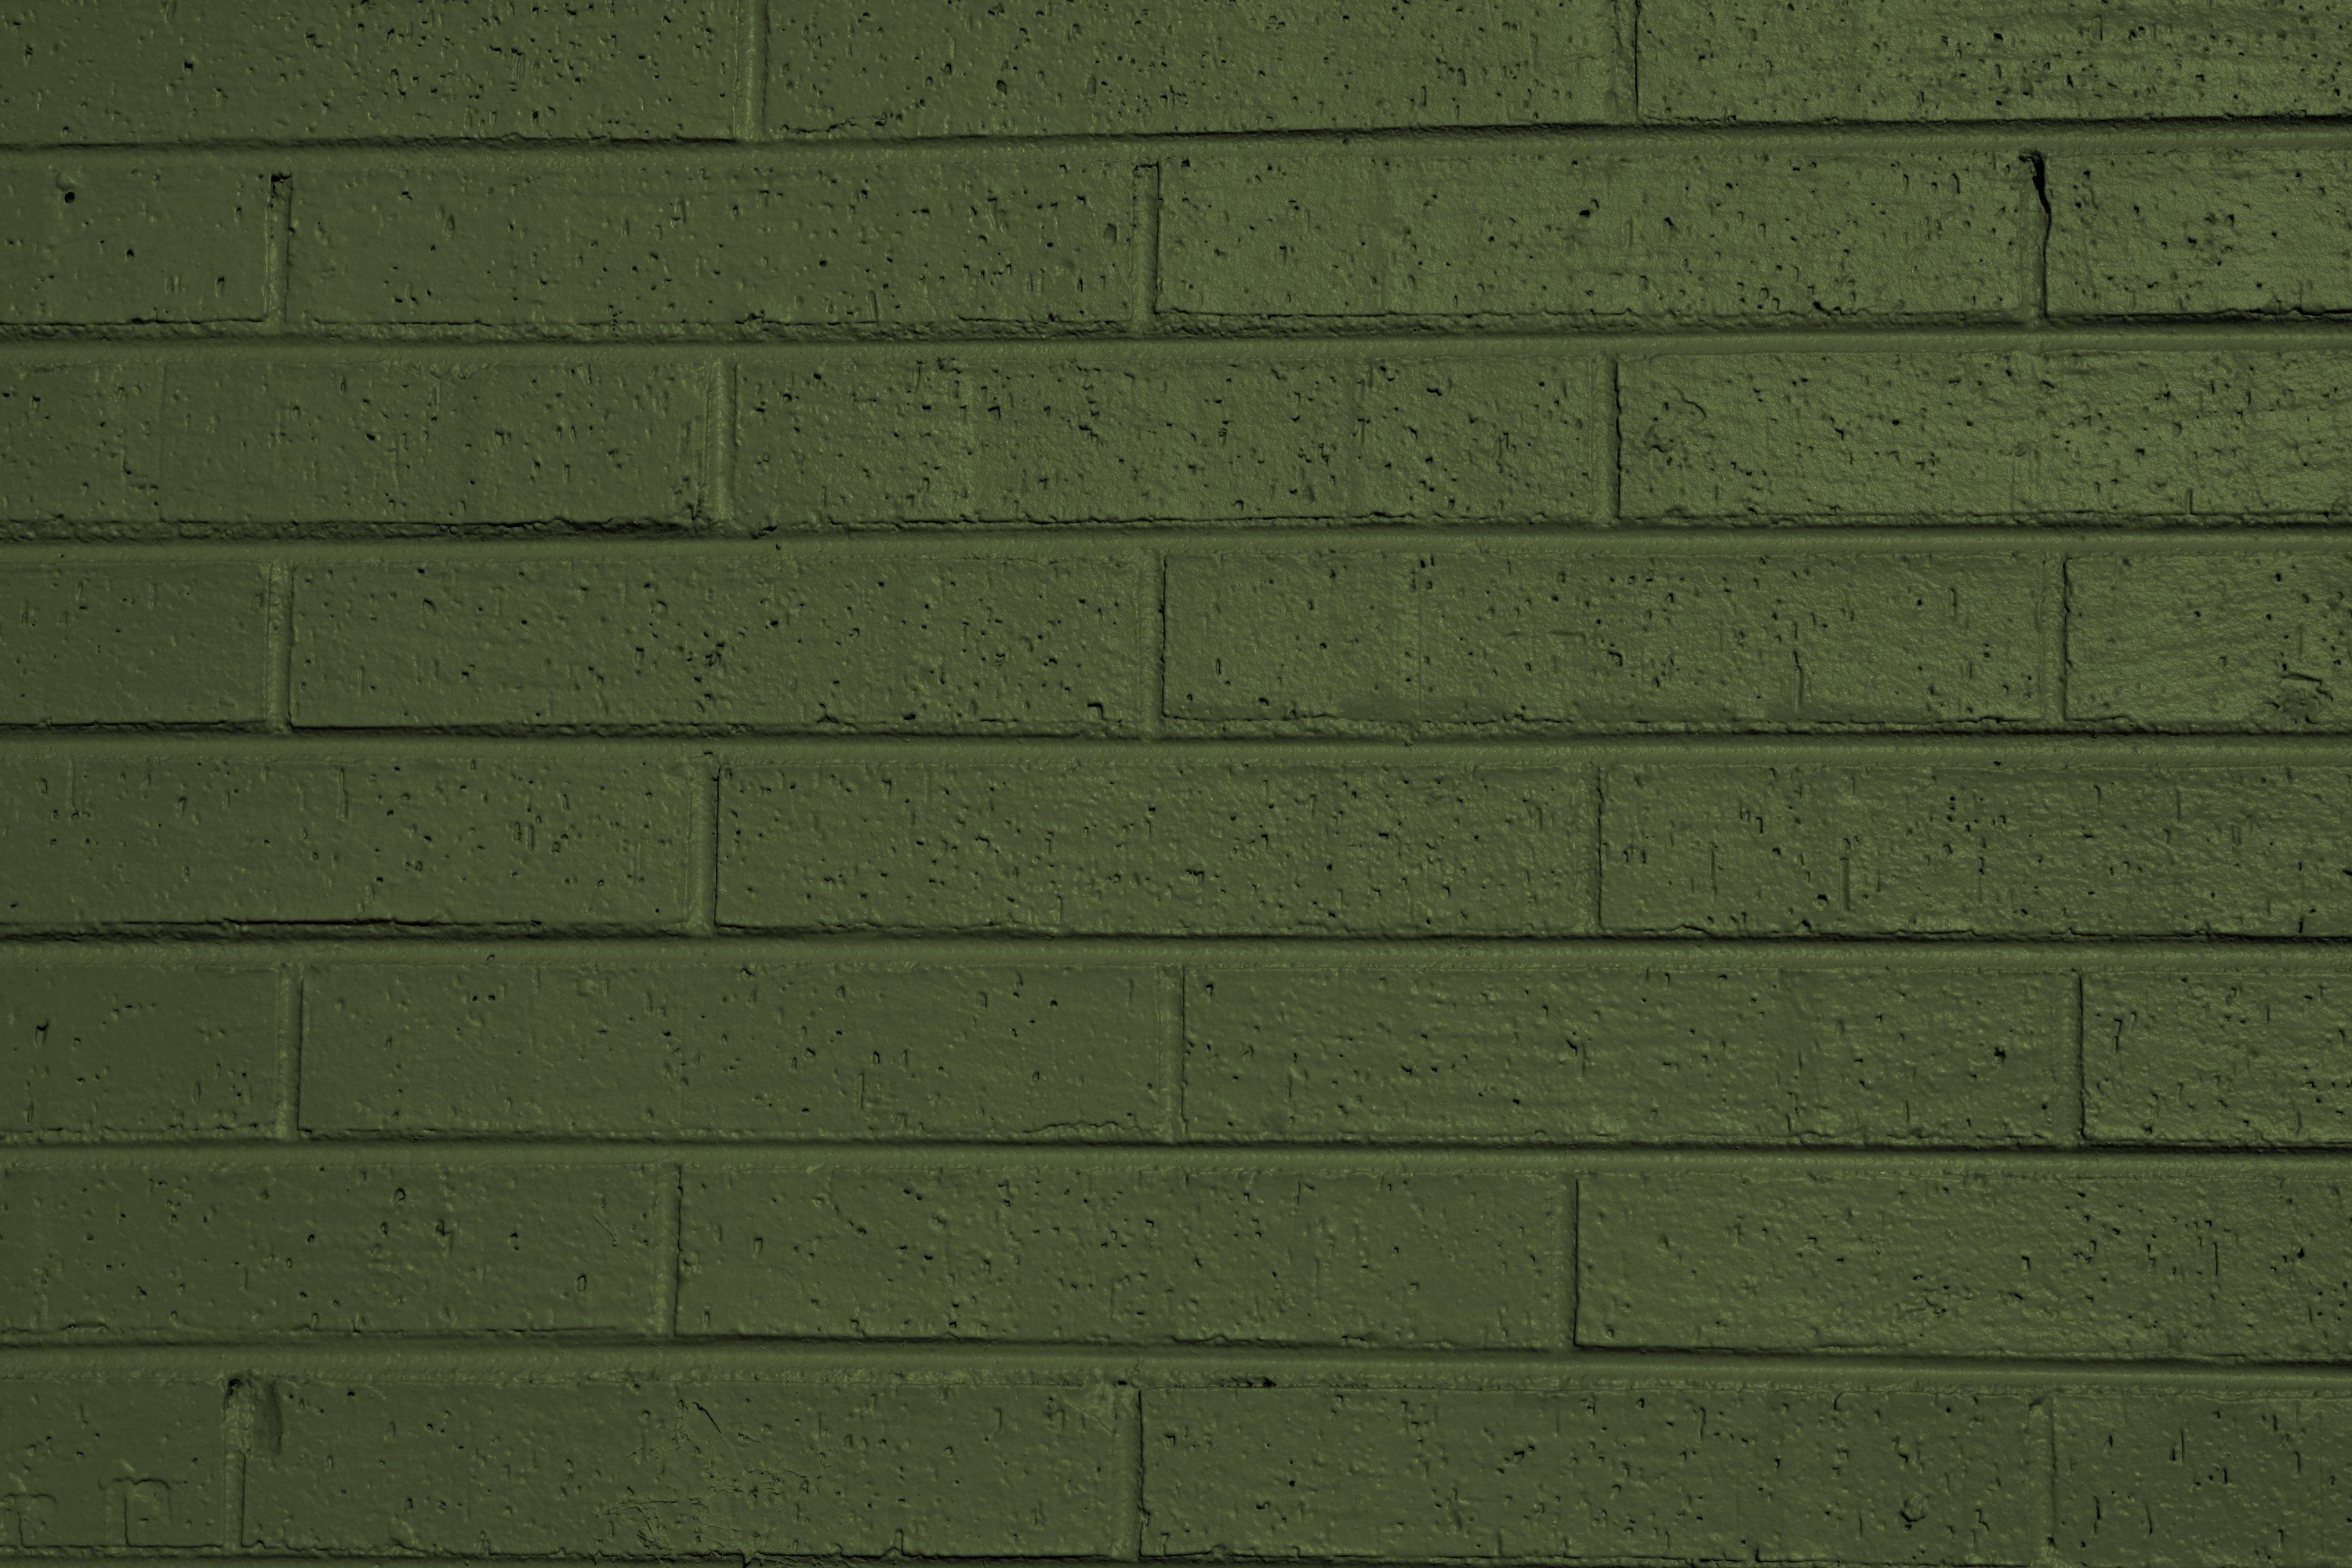 Olive Green Painted Brick Wall Texture Green painted